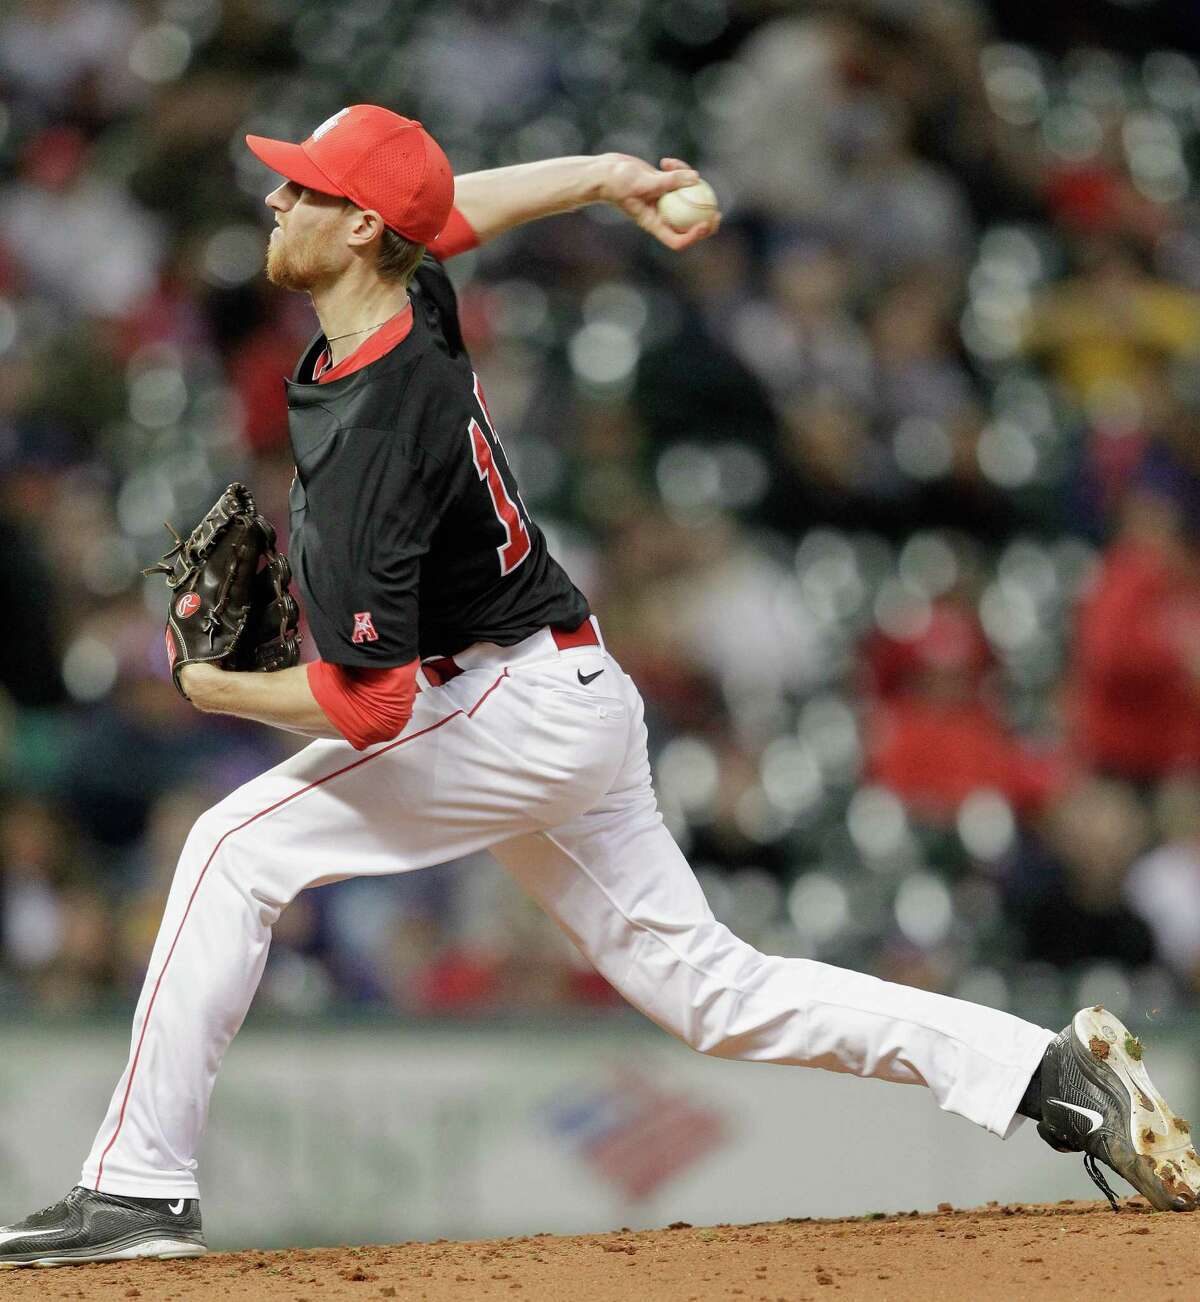 Houston pitcher Andrew Lantrip (13) throws in the first inning against the LSU Tigers during the College Classic on March 6, 2015 at Minute Maid Park in Houston, Texas.